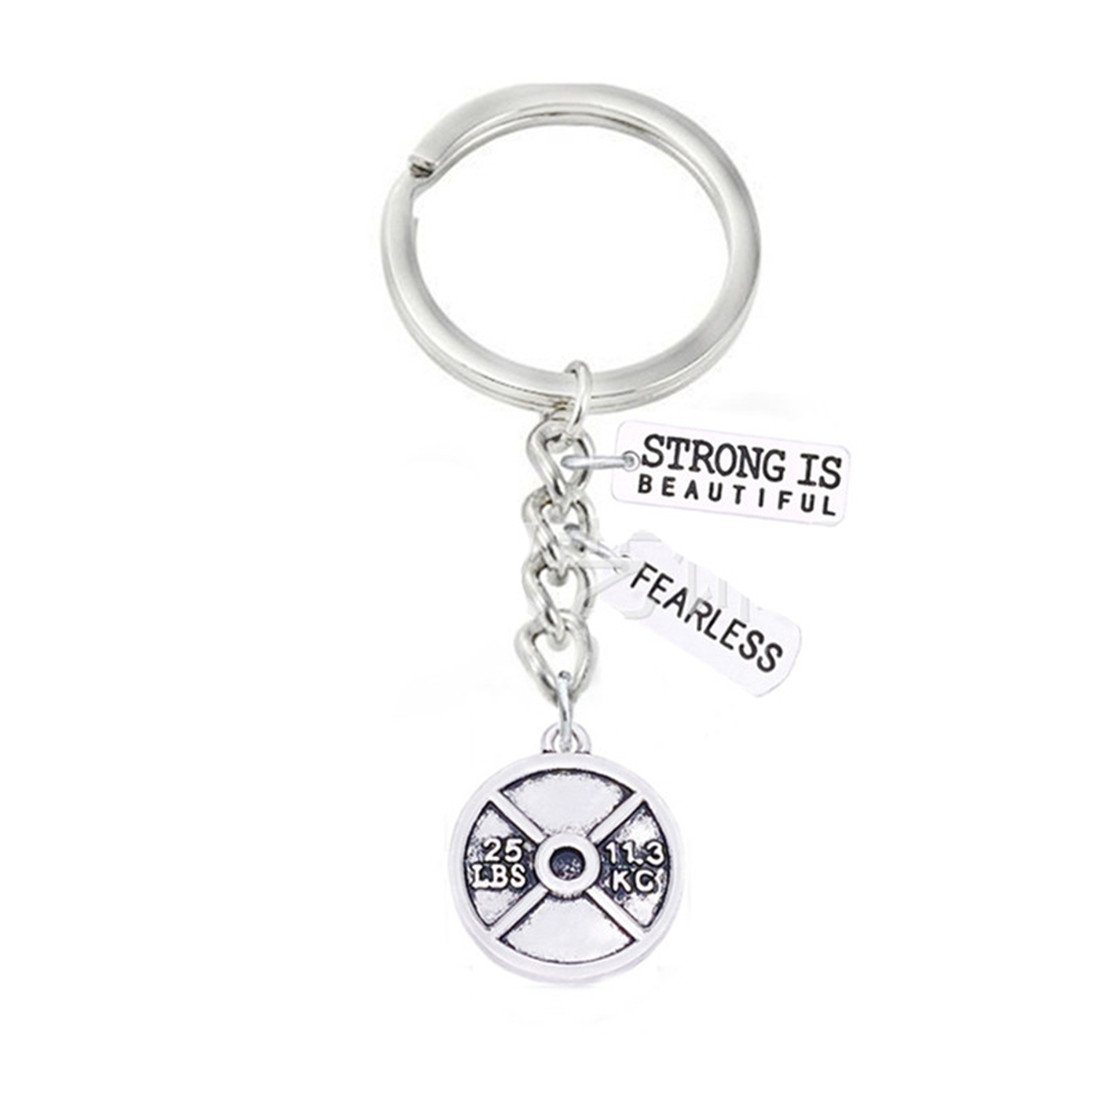 Strong is beautiful Keychain ,FEARLESS ,Weight plate Key Ring, Motivational, Fitness ,Sports Keyring ibssha